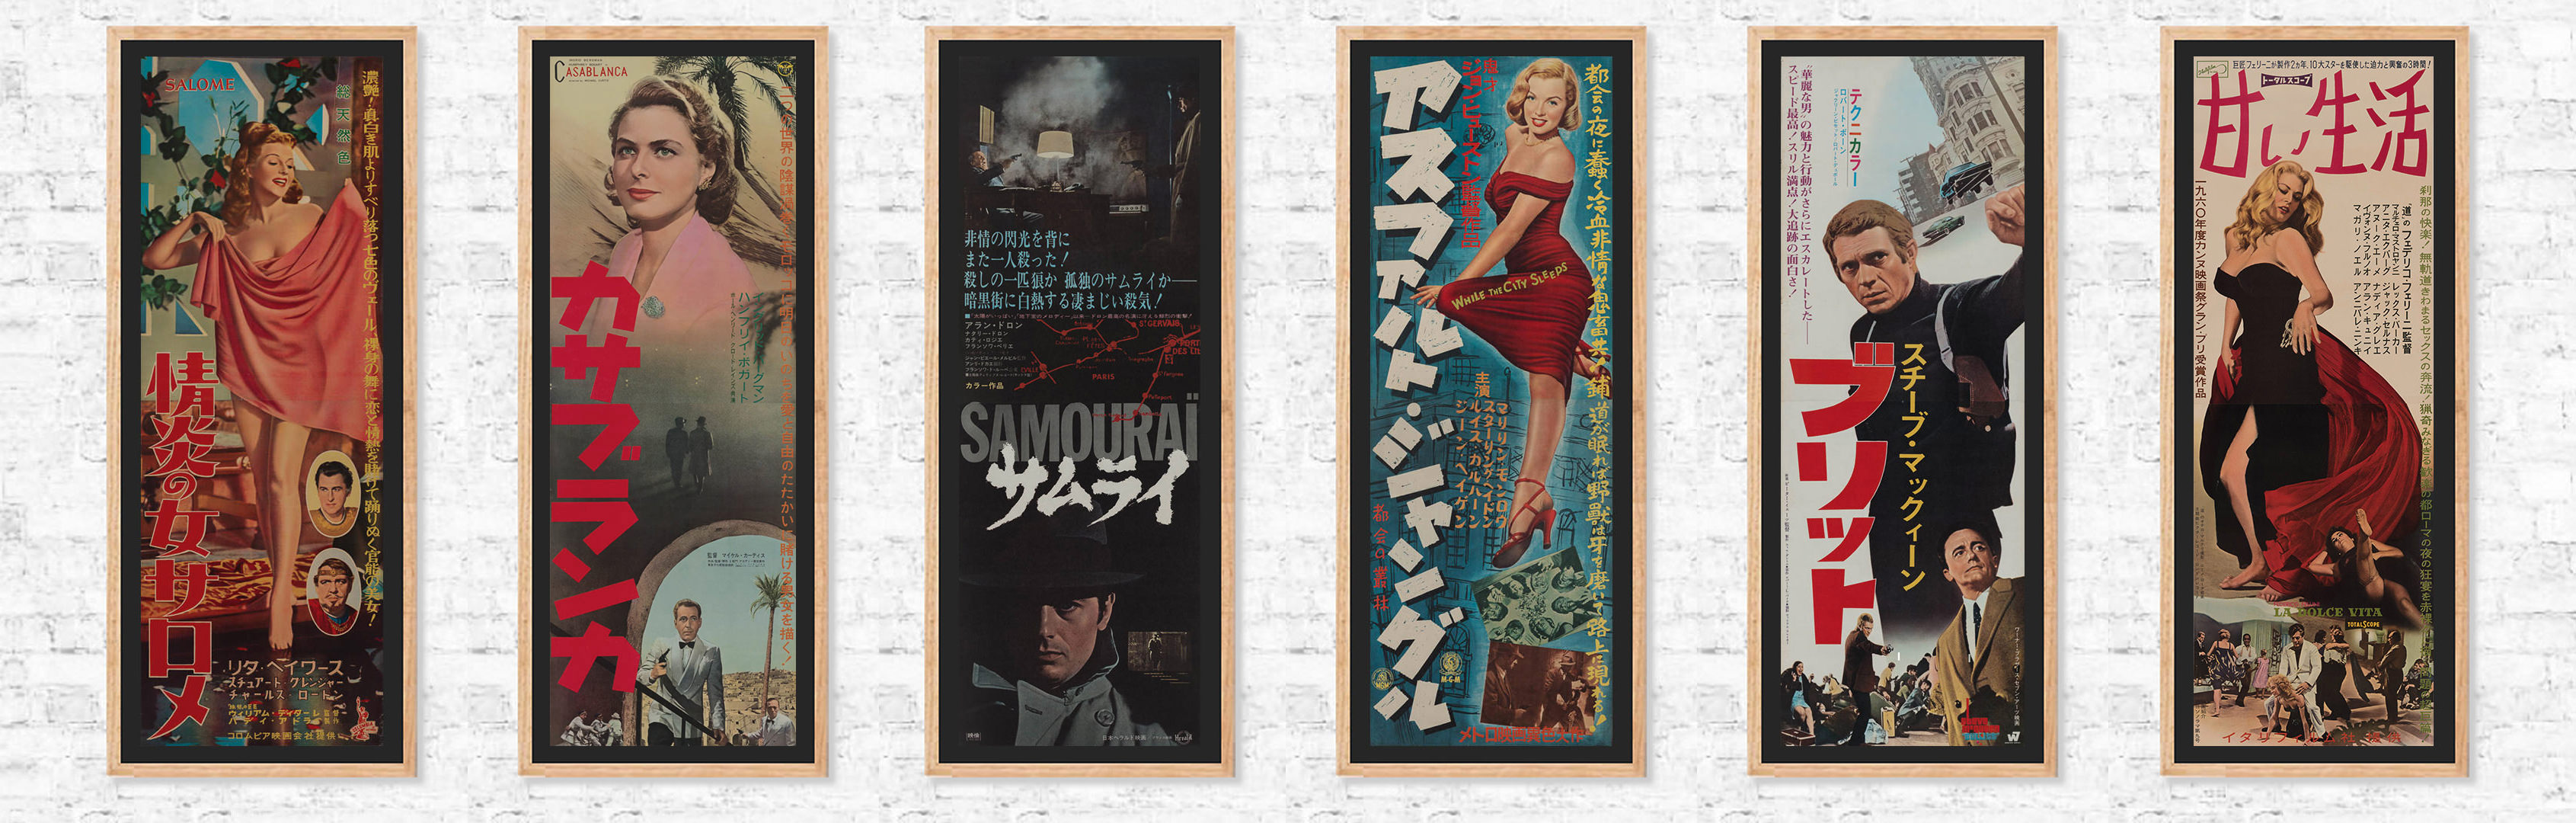 Japanese STB Movie Posters | Salome | Casablanca | Le Samourai | Asphalt Jungle | Bullitt | La Dolce Vita